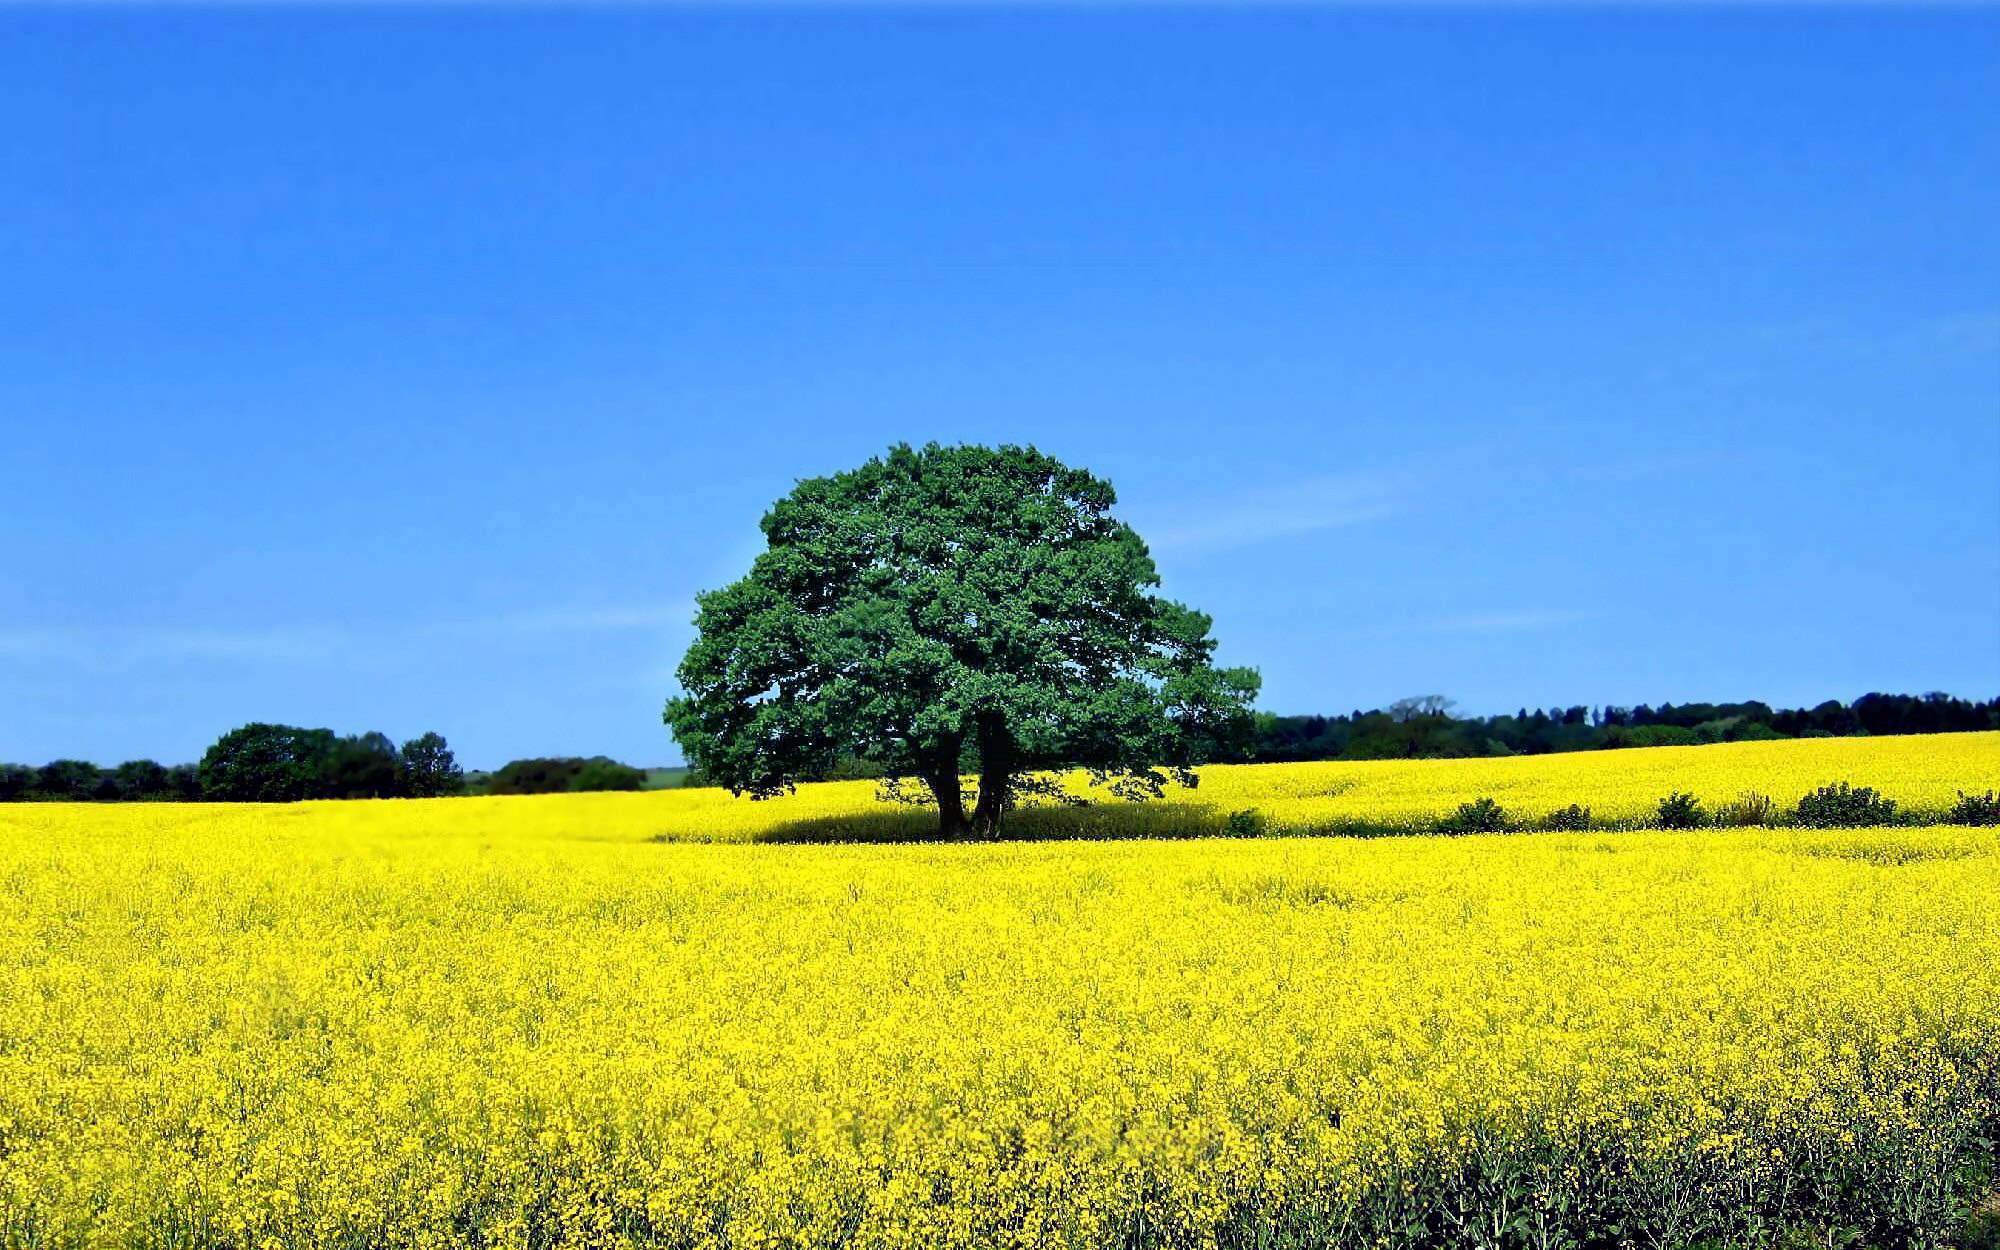 1254 Yellow Flower Hd Wallpapers Background Images Wallpaper Abyss